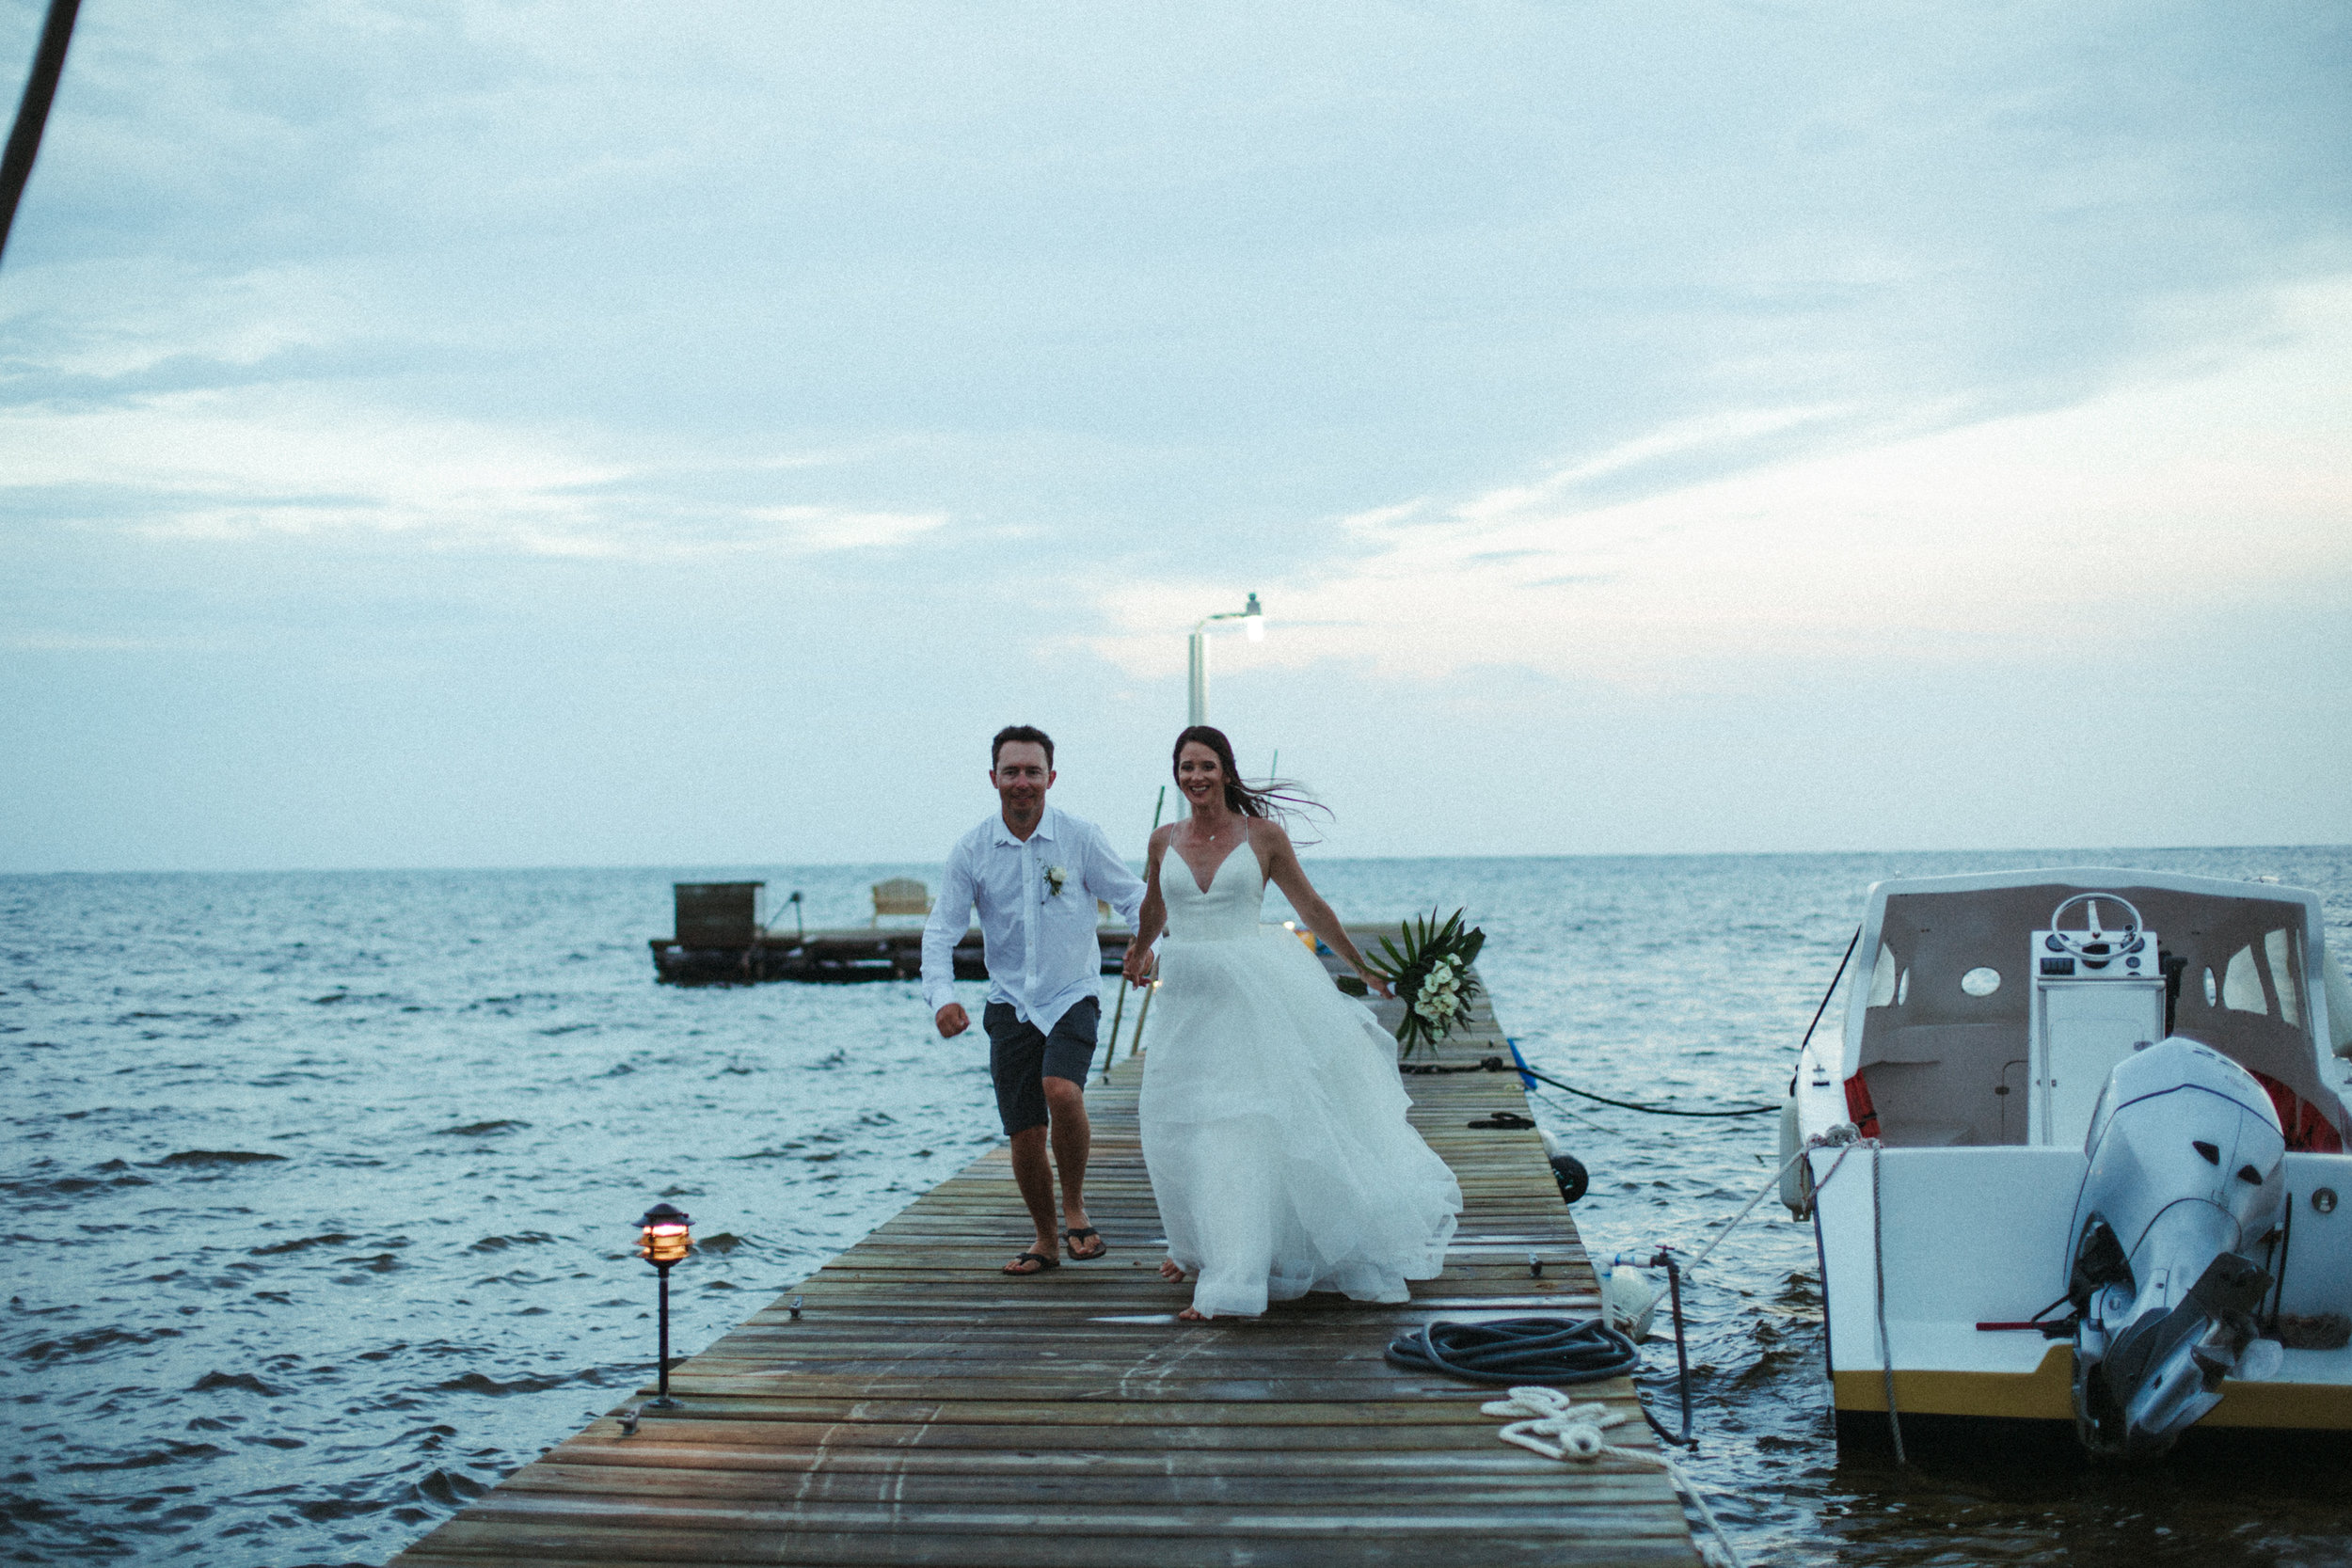 san-pescador-belize-wedding-christinemariephoto-j-k-147.jpg